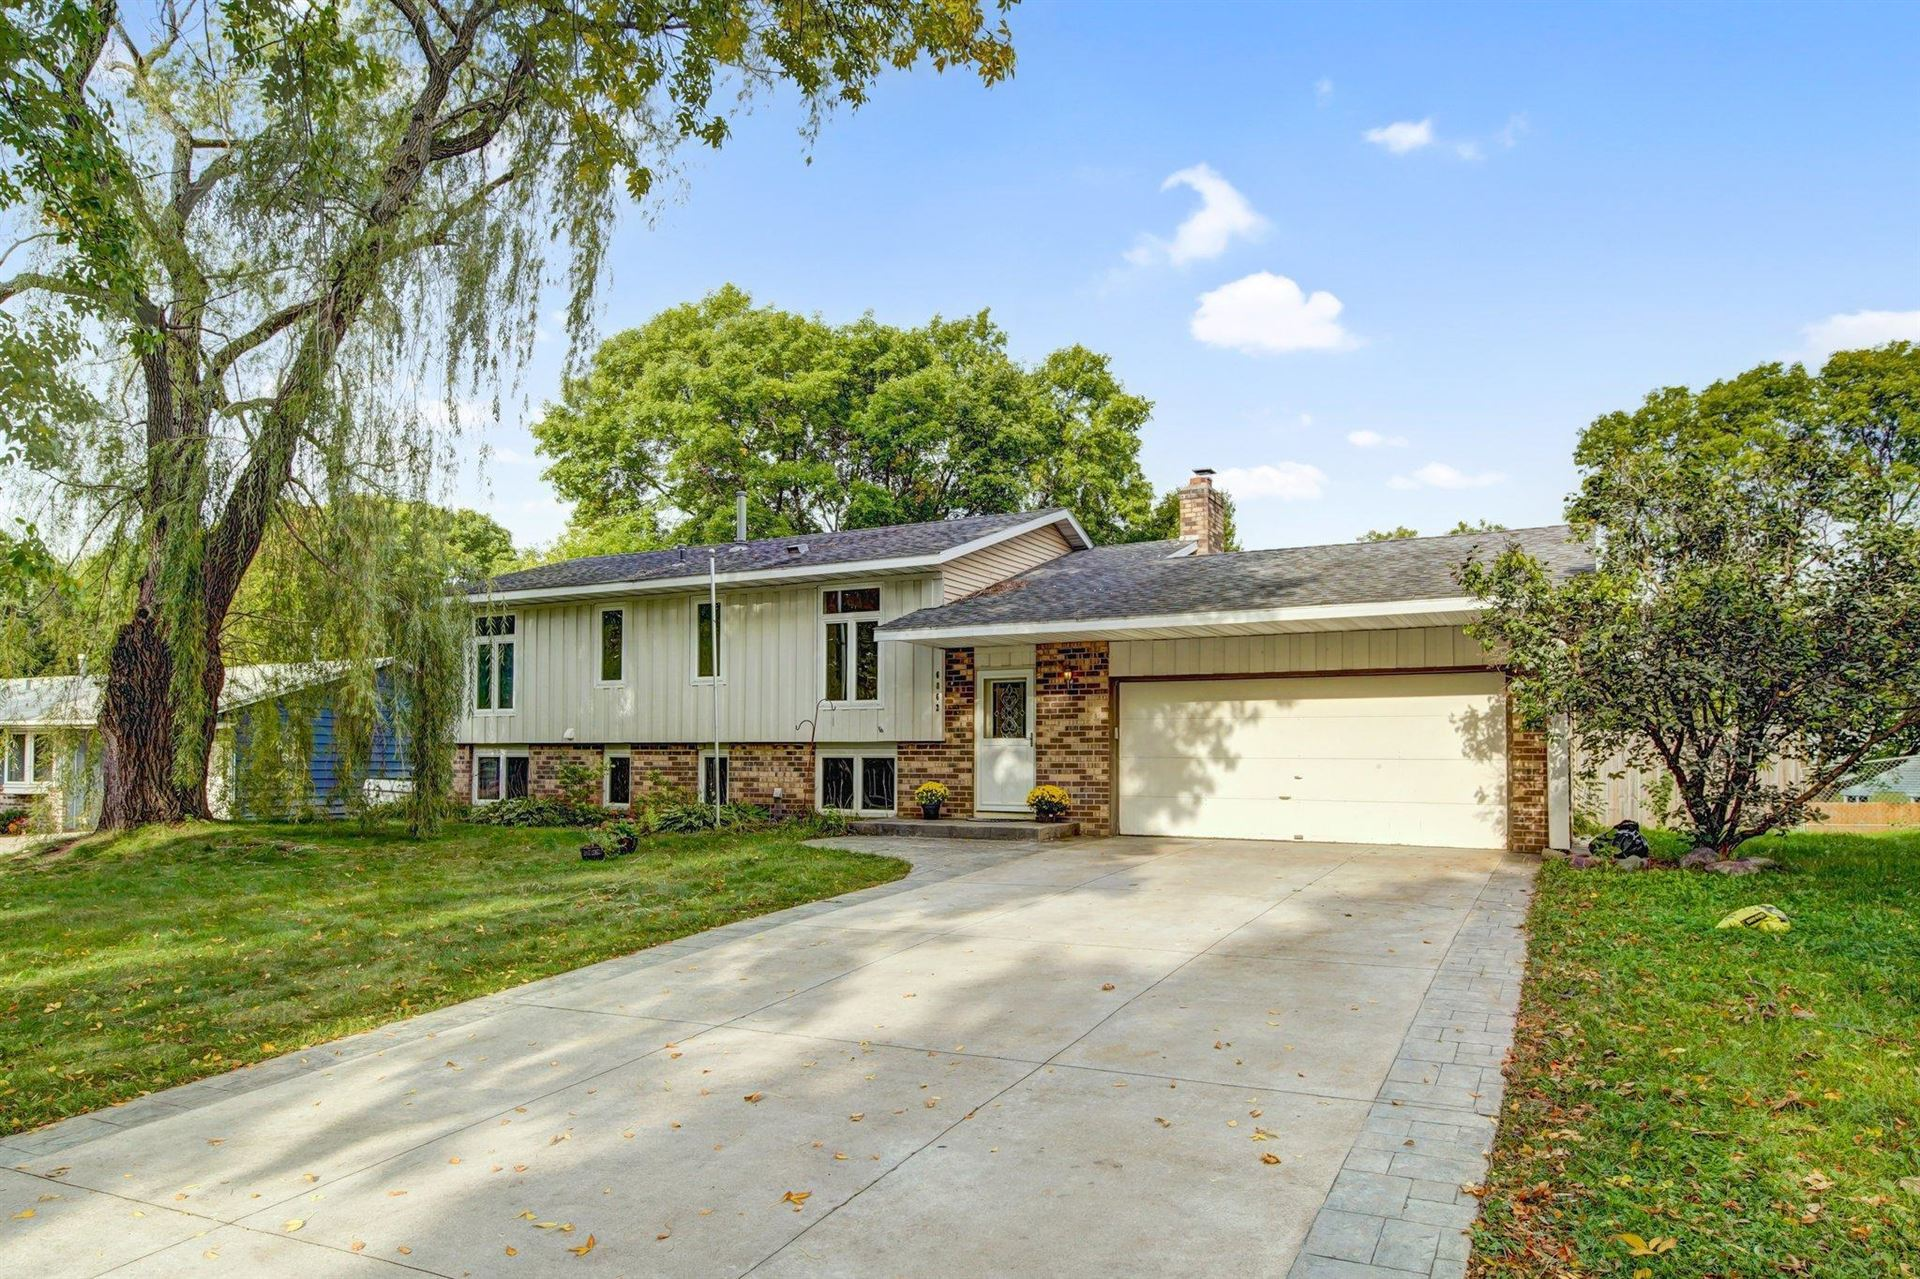 Photo of 6862 Ideal Avenue S, Cottage Grove, MN 55016 (MLS # 6105686)